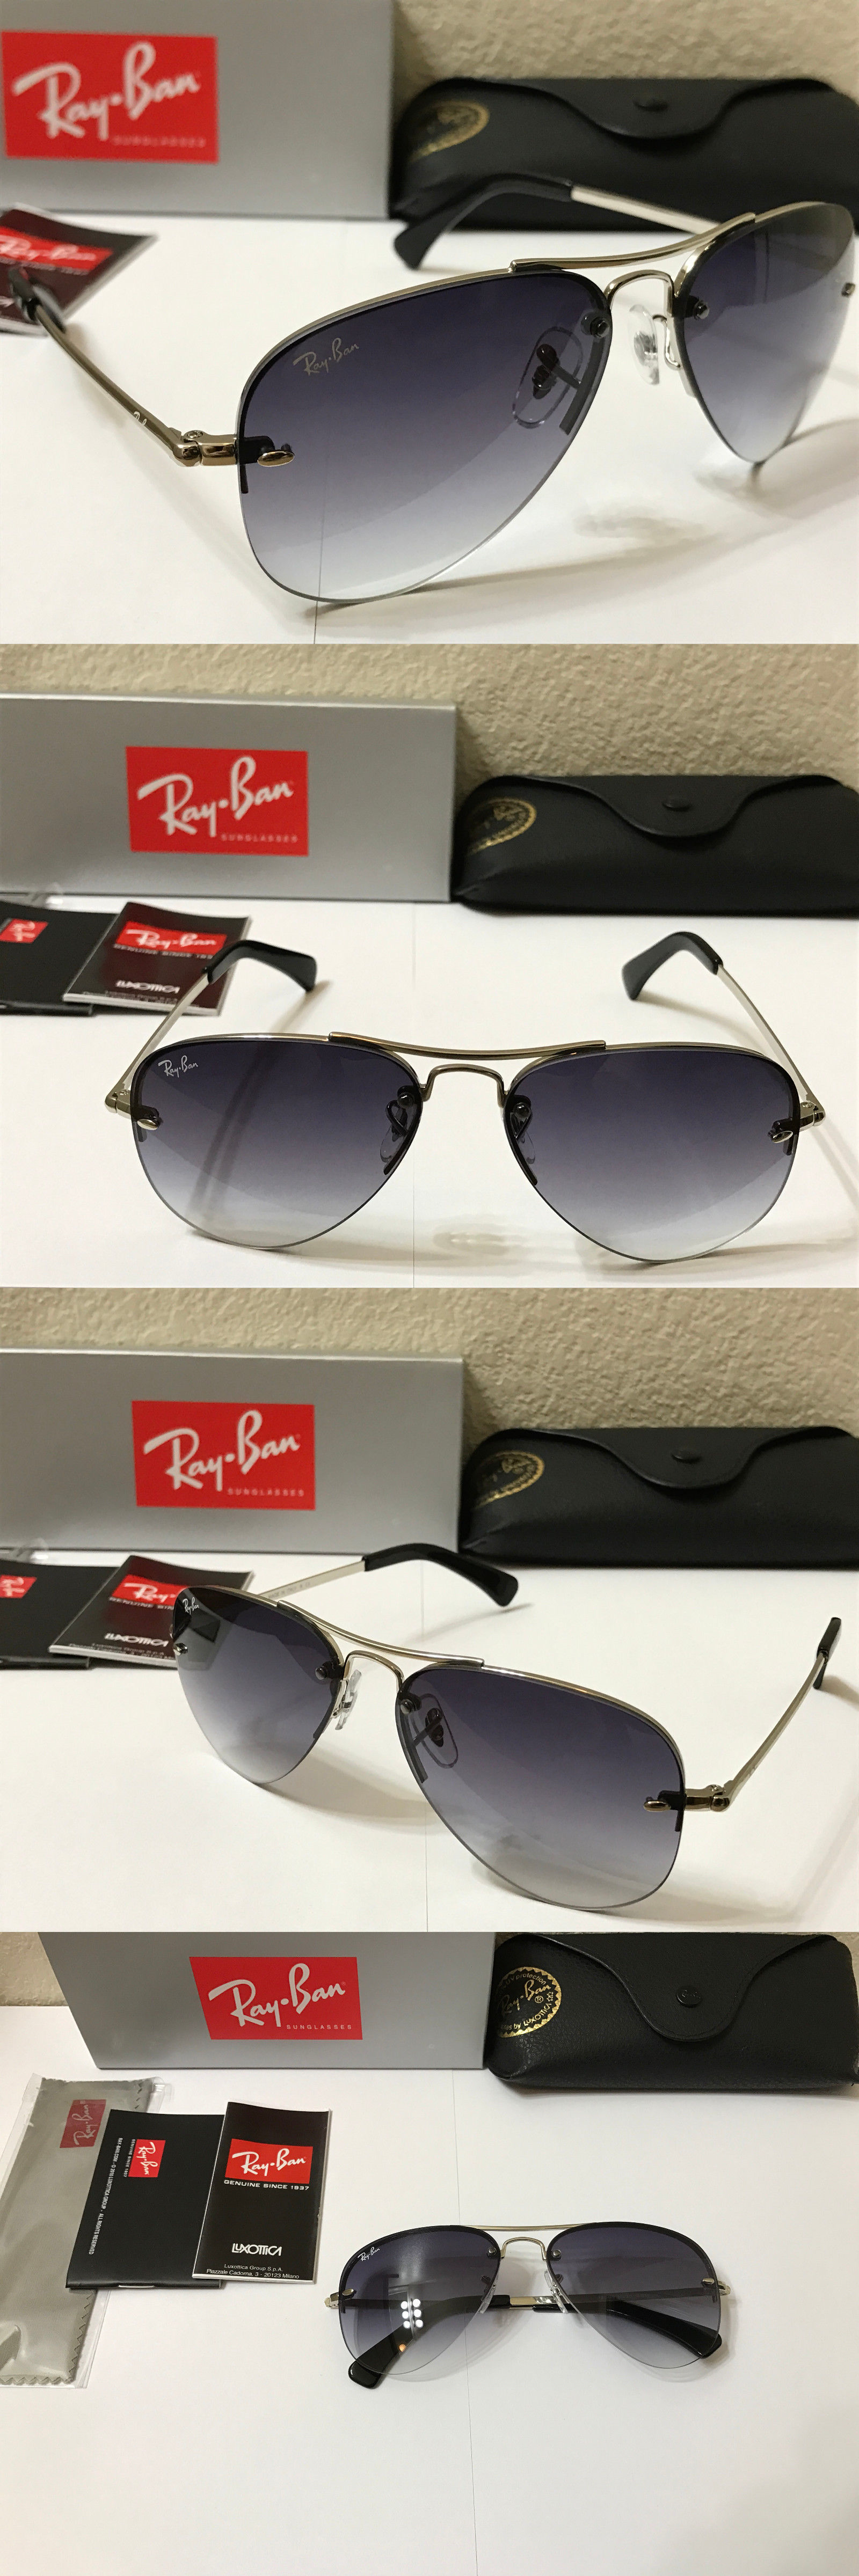 0d834a24c9 ... where can i buy sunglasses 155189 ray ban rb3449 003 8g highstreet sunglasses  silver grey gradient